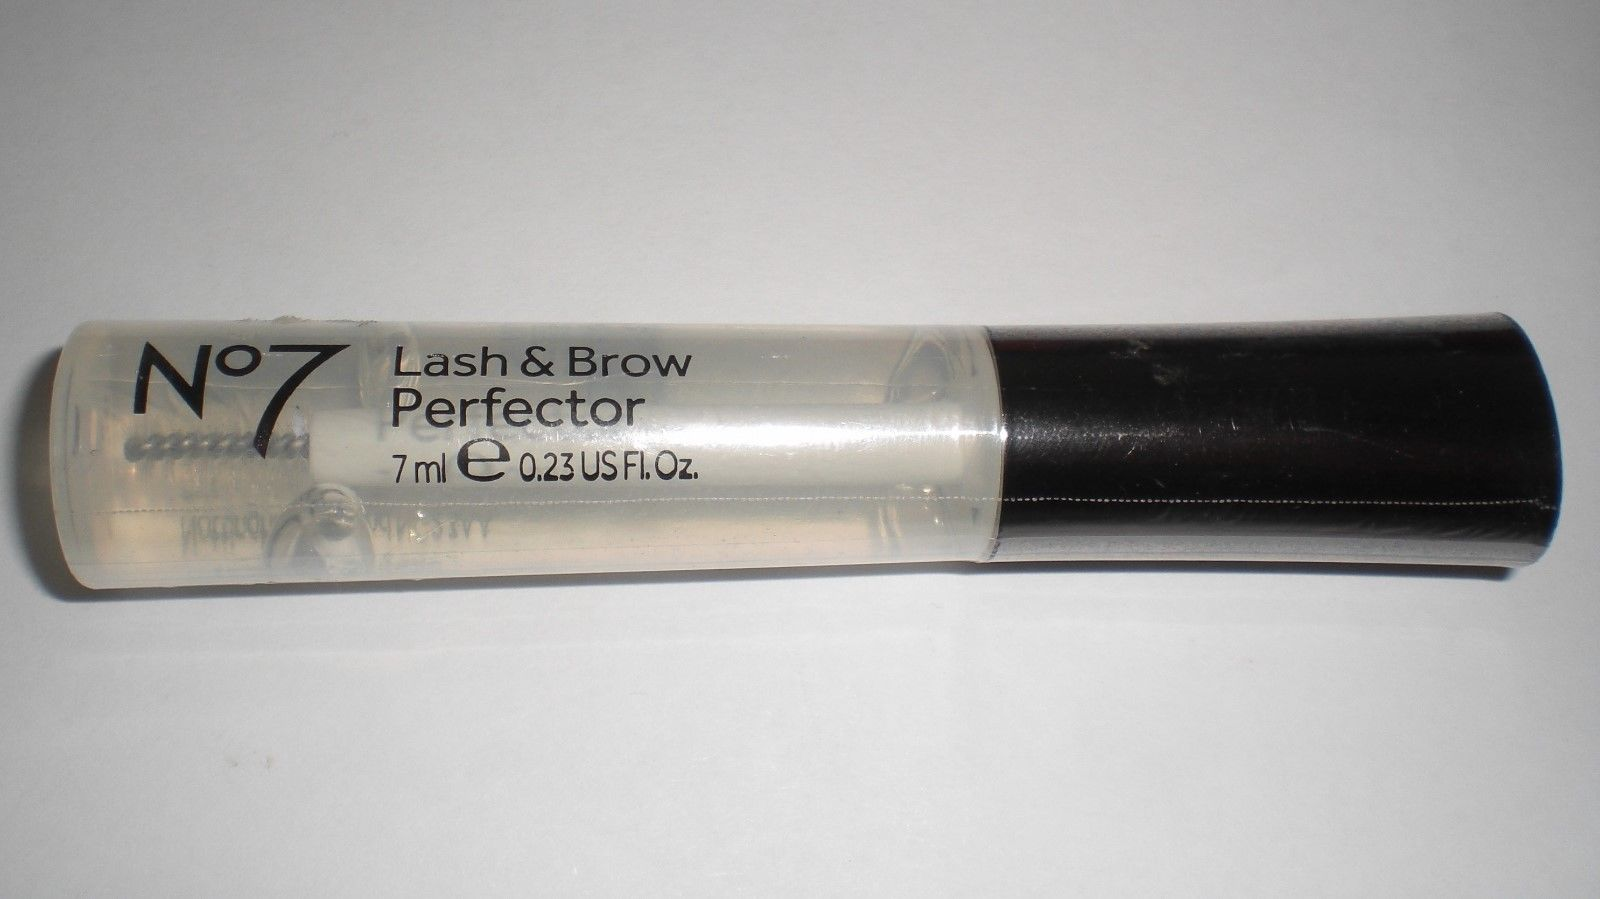 Boots No7 Lash & Brow Perfector Clear Conditioning Makeup Gel 7ml/.23oz Lot of 2